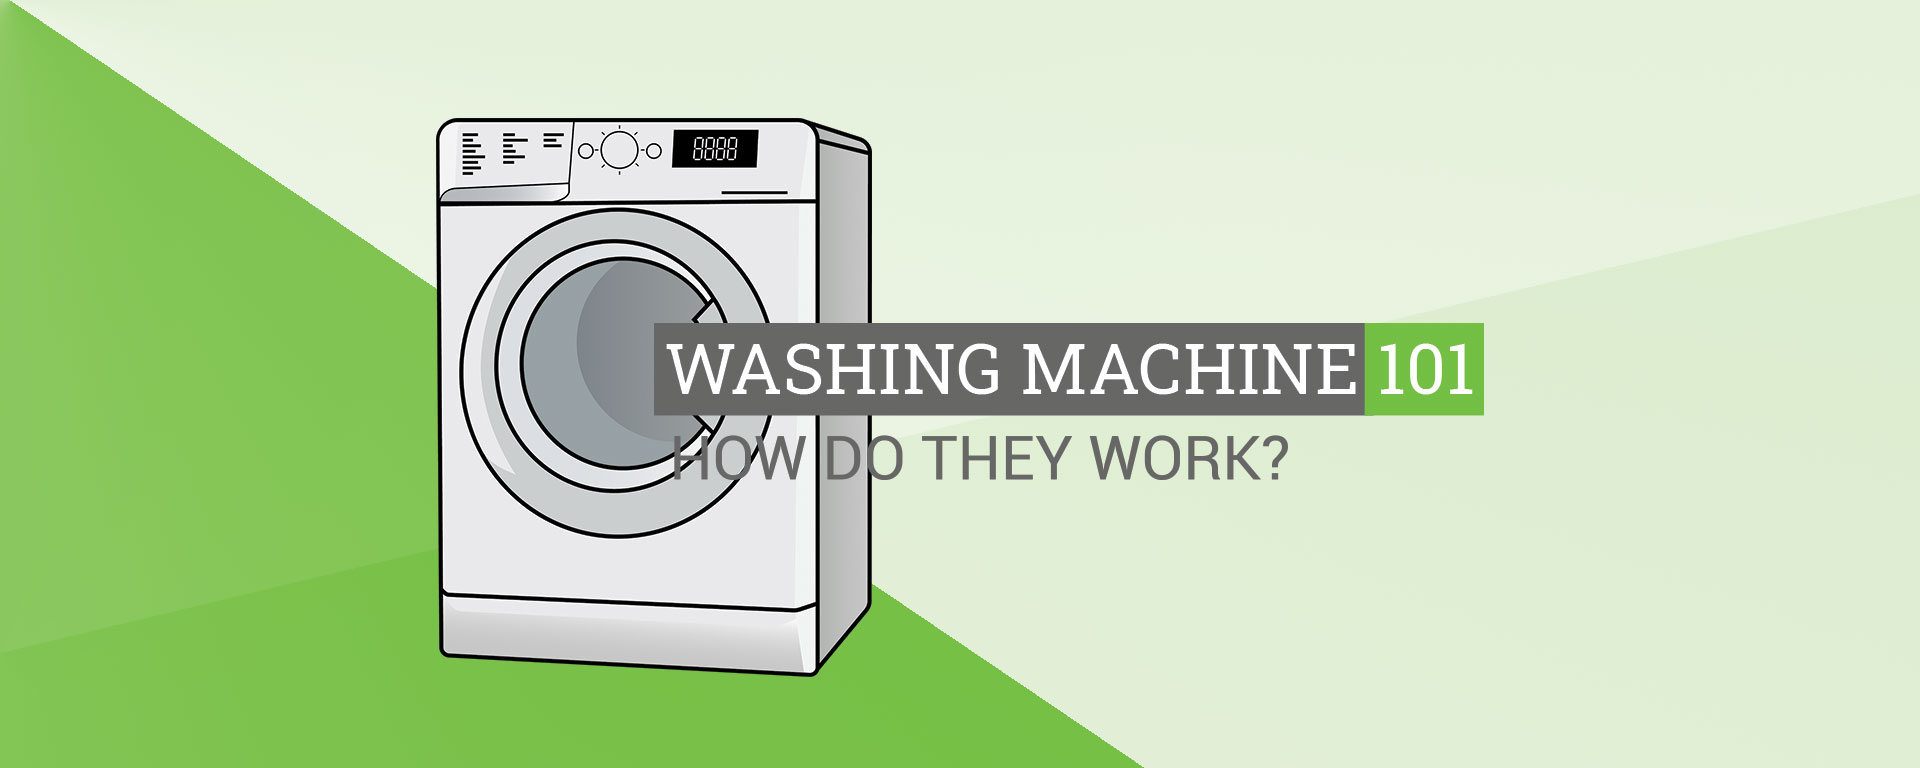 How Washing Machines Work